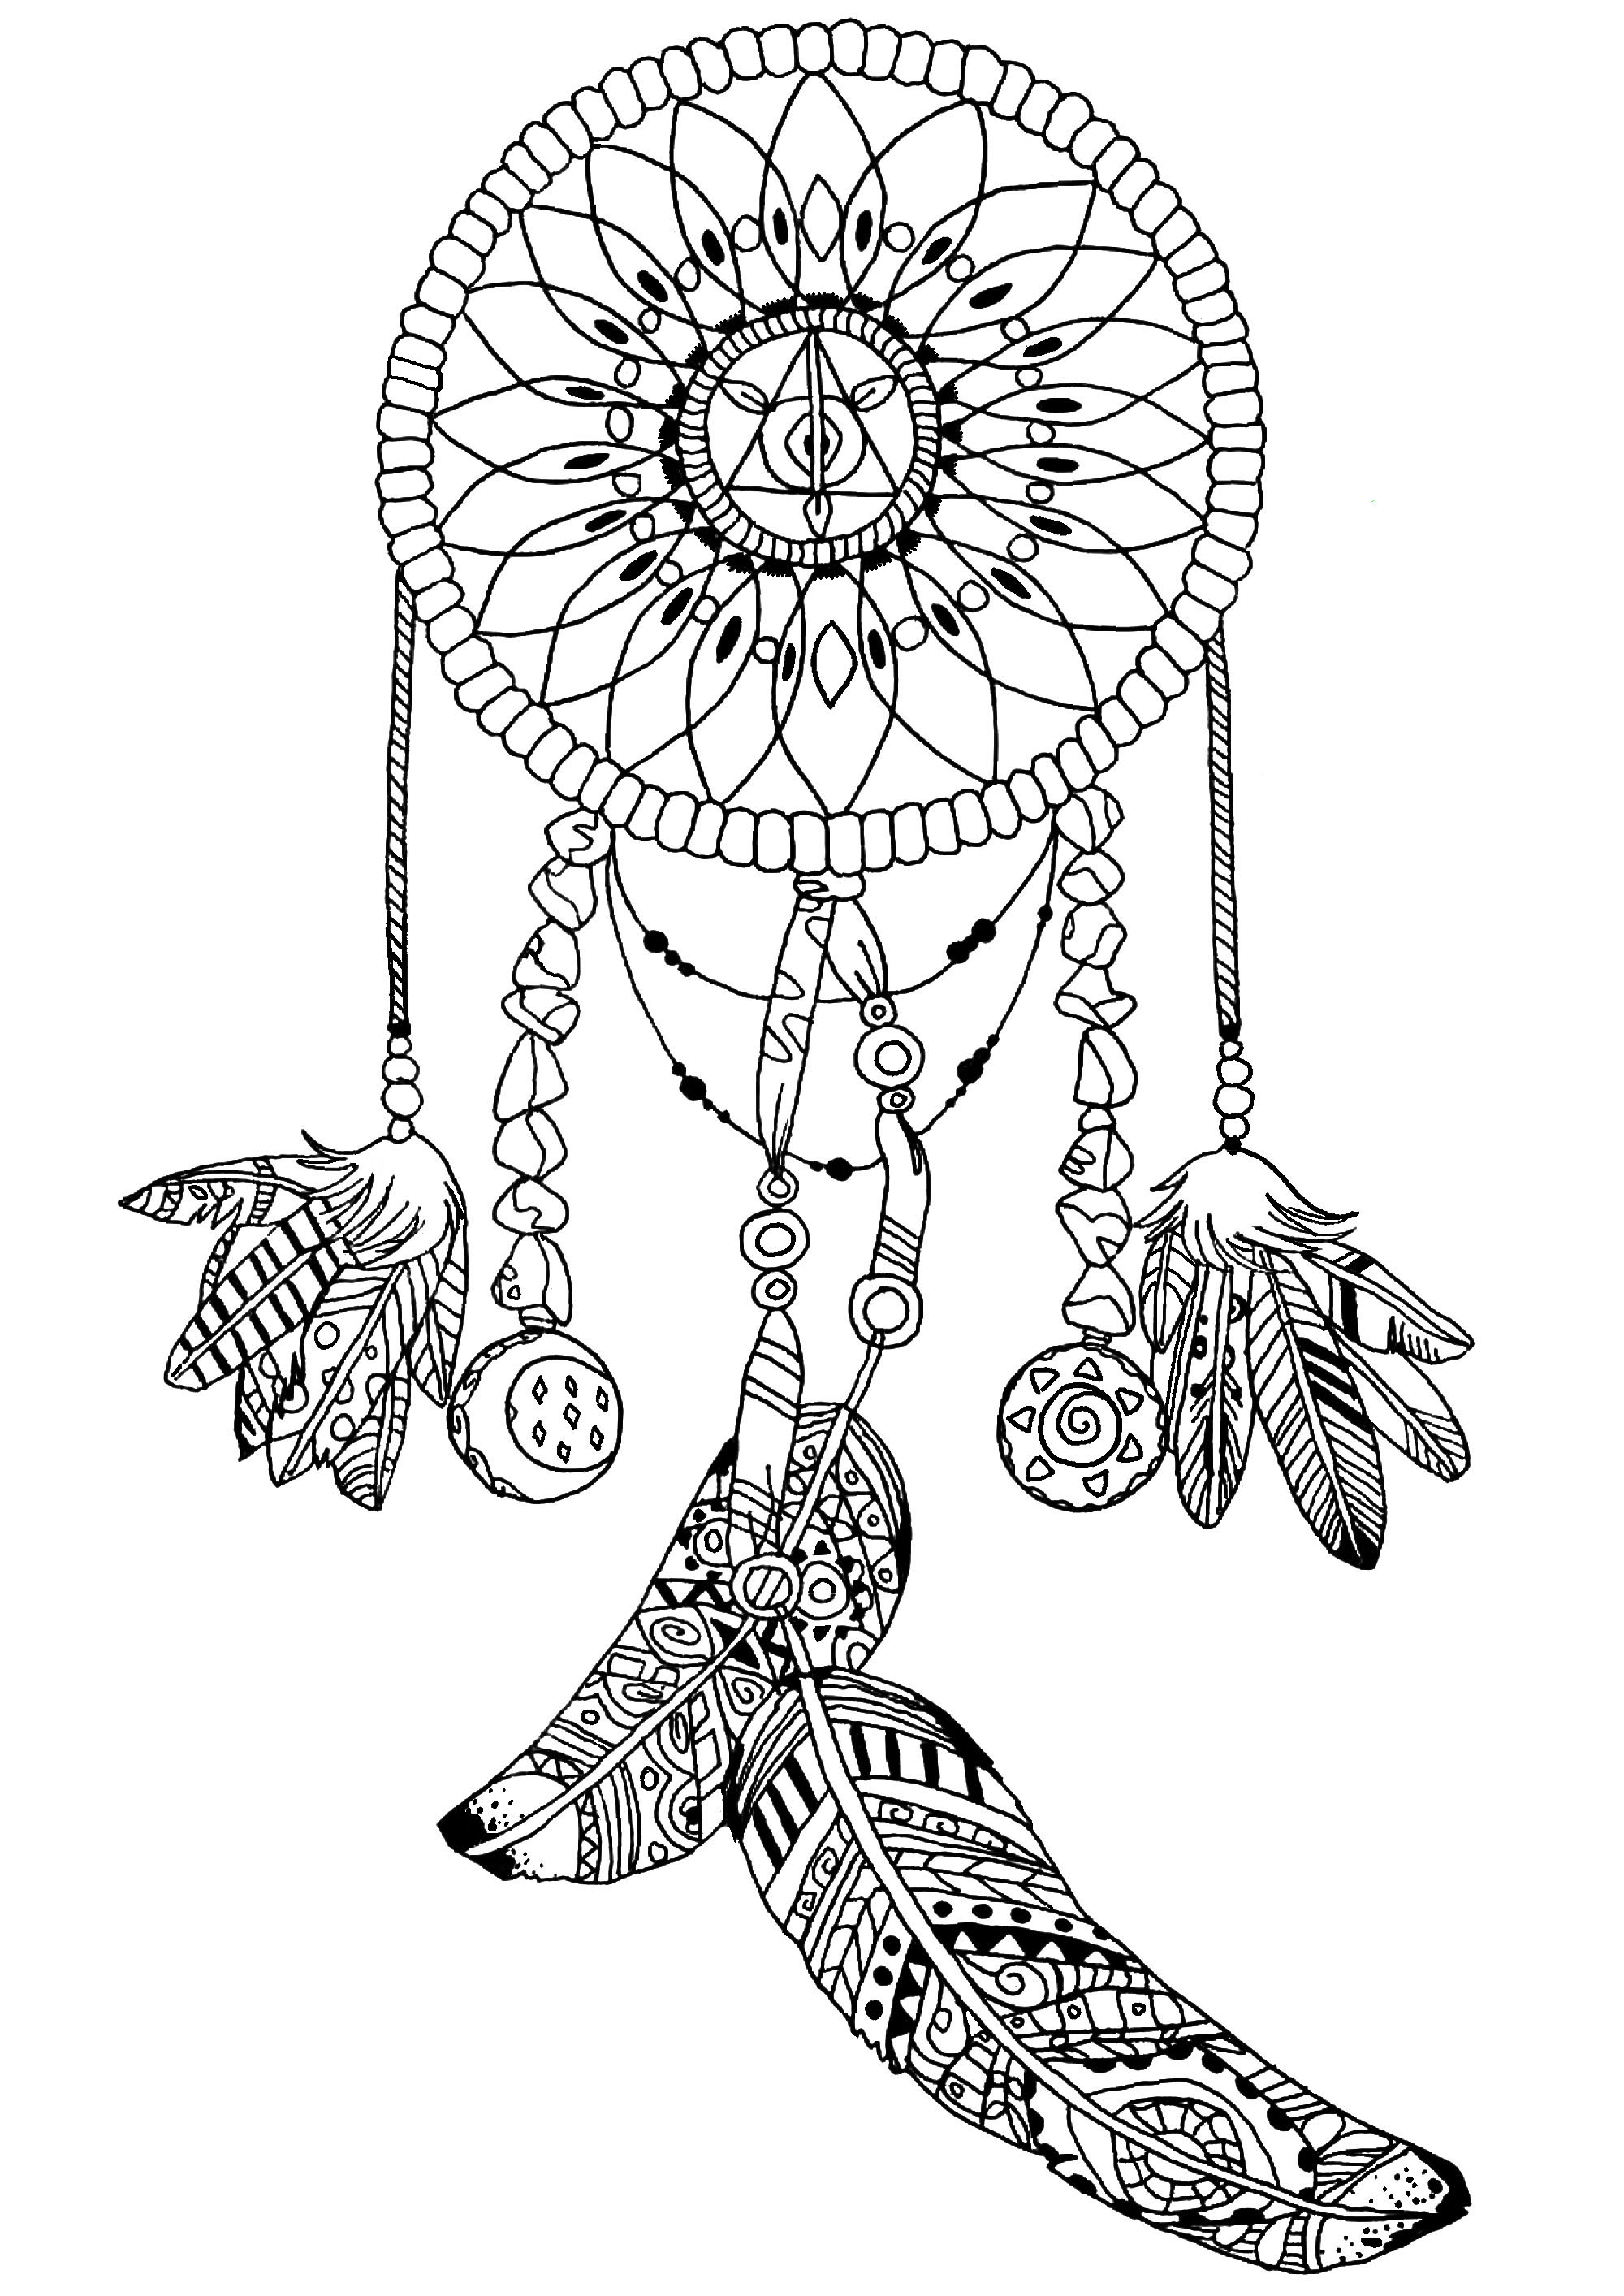 Anti stress colouring pages for adults - Beautiful Dreamcatcher To Print From The Gallery Zen Anti Stress Artist